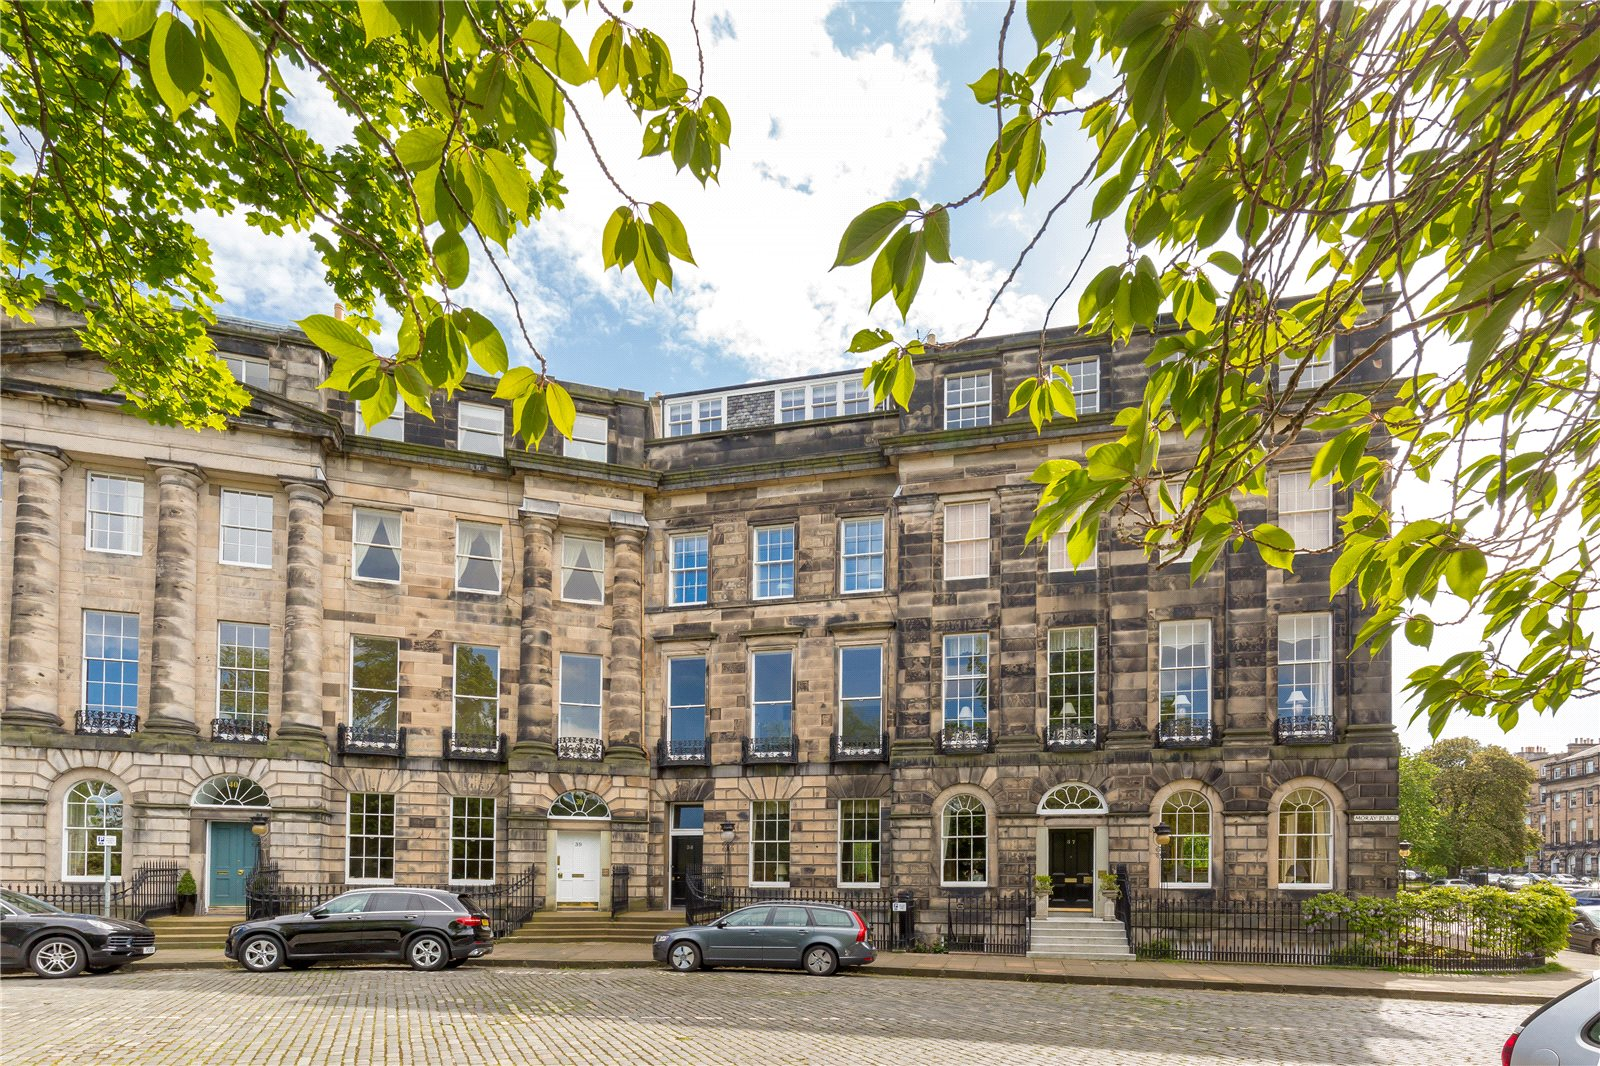 Edinburgh - Real Estate and Apartments for Sale | Christie ...